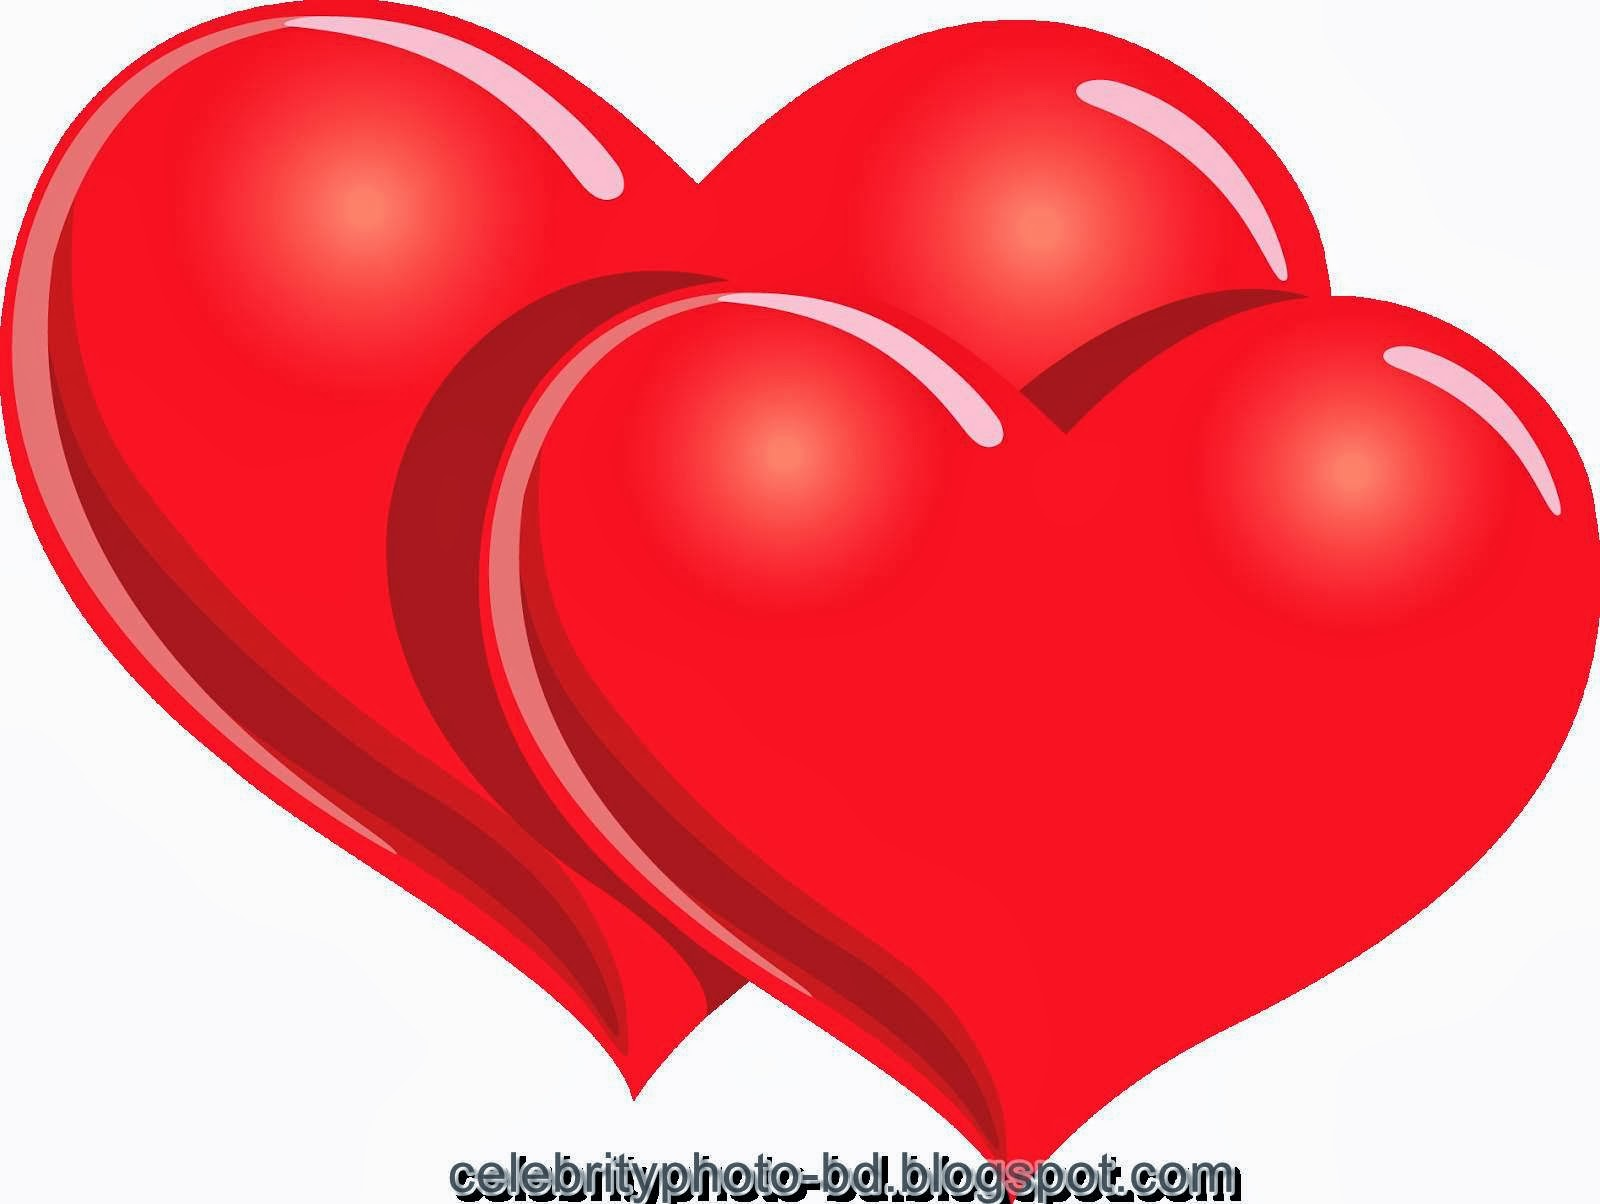 Heart+n+Love+Special+valentines+day+HD+wallpapers+and+Images+2014+Full+HD+photo002